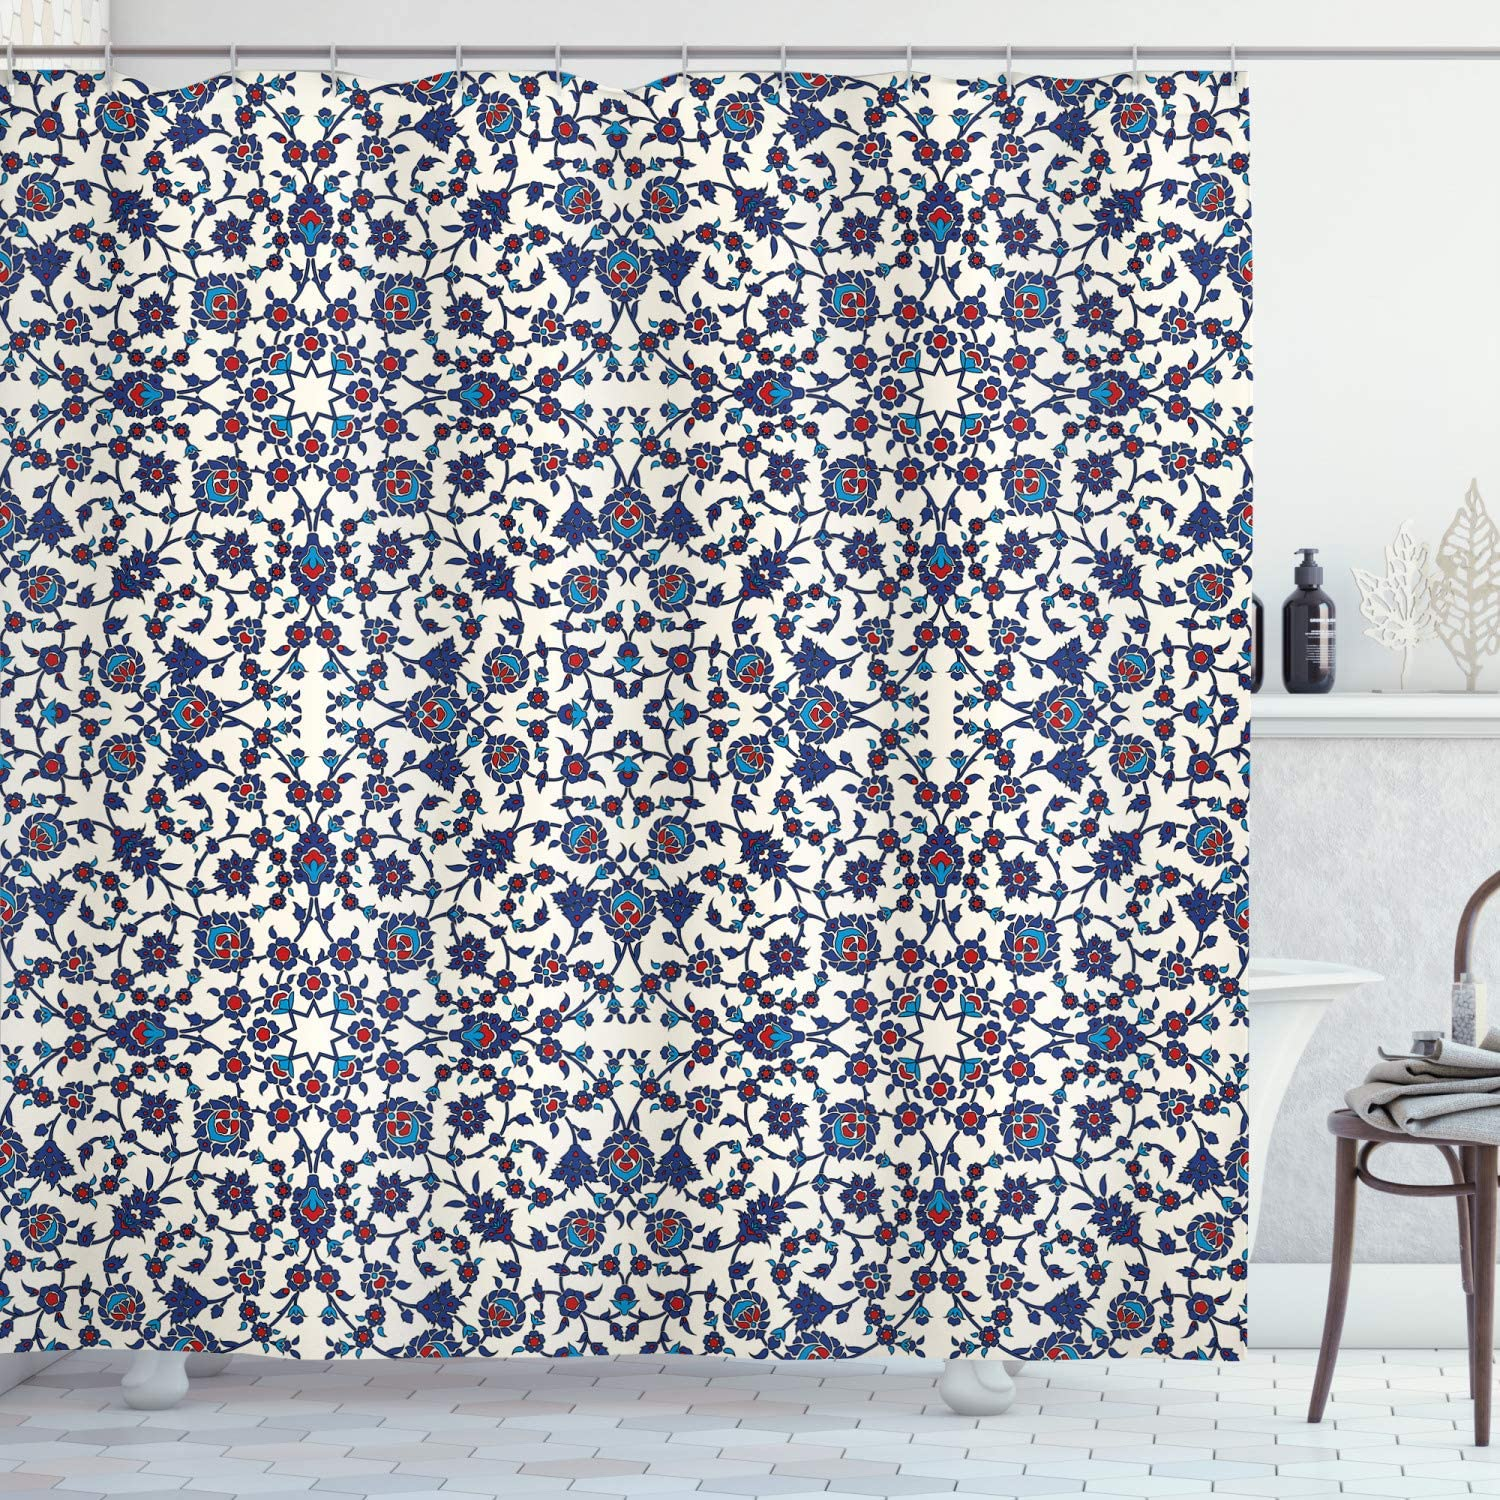 Orient Shower Curtain Moroccan Floral Pattern with Victorian Rococo Baroque Design Bathroom Decor Set with Hooks 70